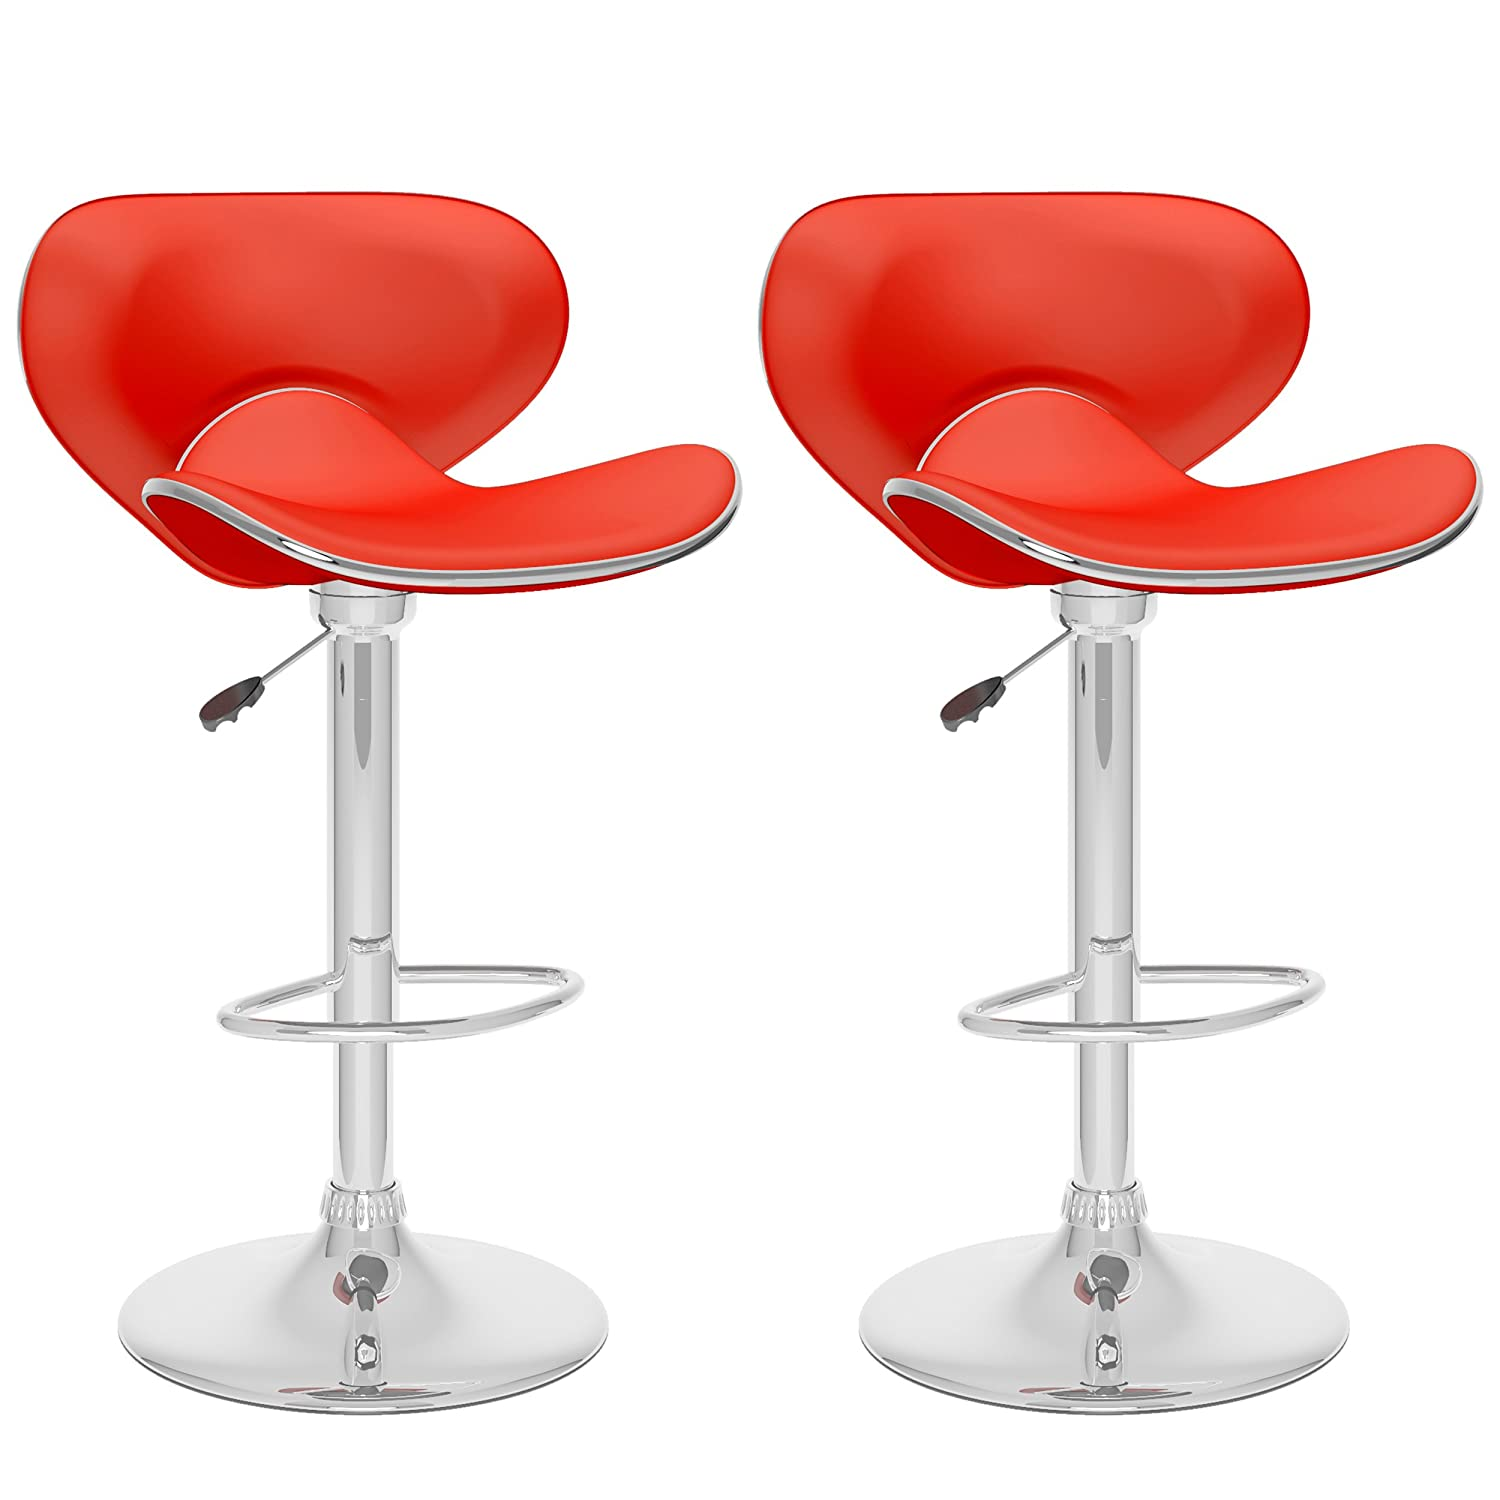 CorLiving B-502-VPD Curved Form Fitting Adjustable Bar Stool, Set of 2